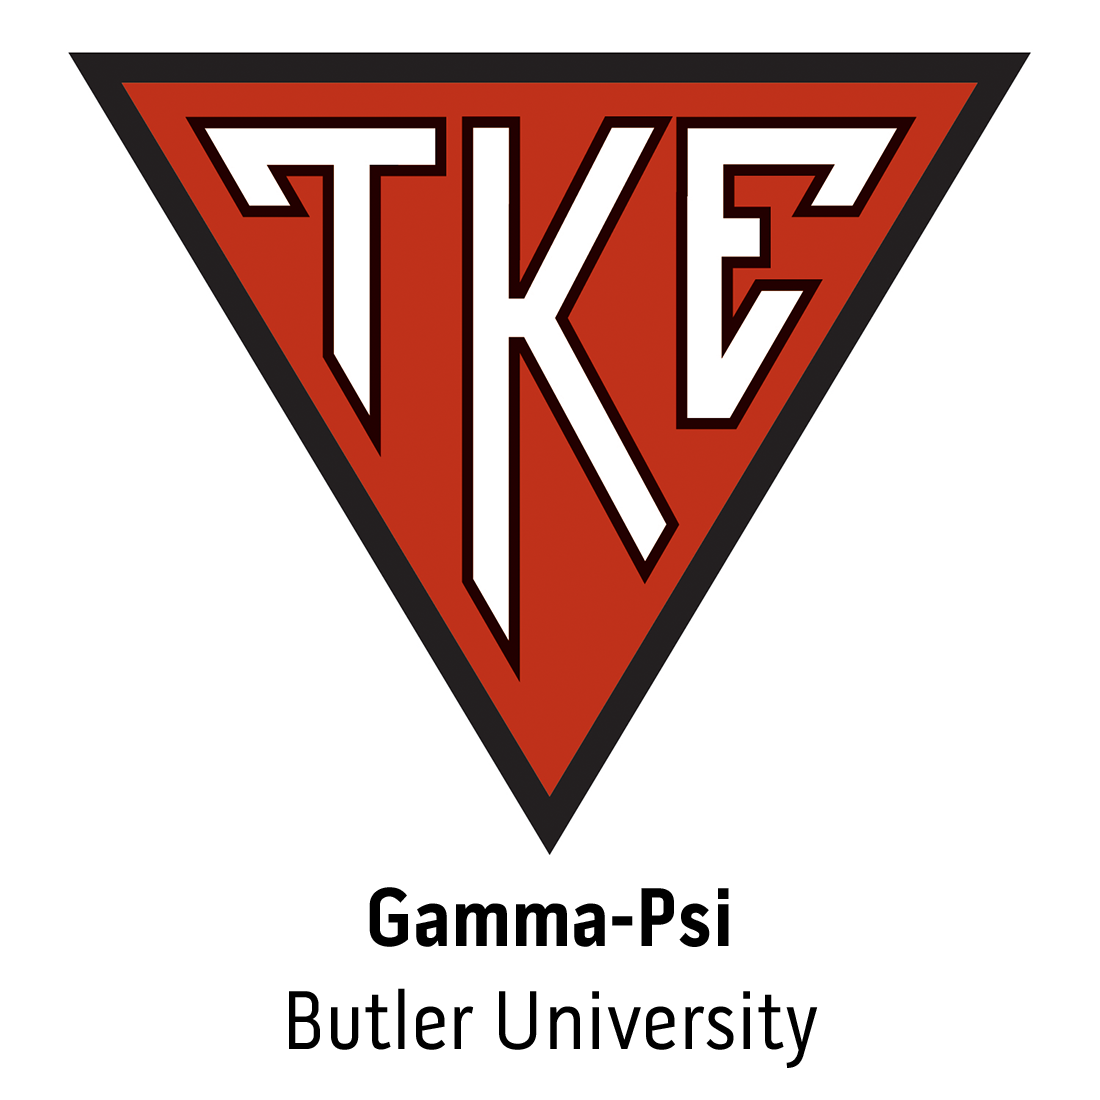 Gamma-Psi Chapter at Butler University